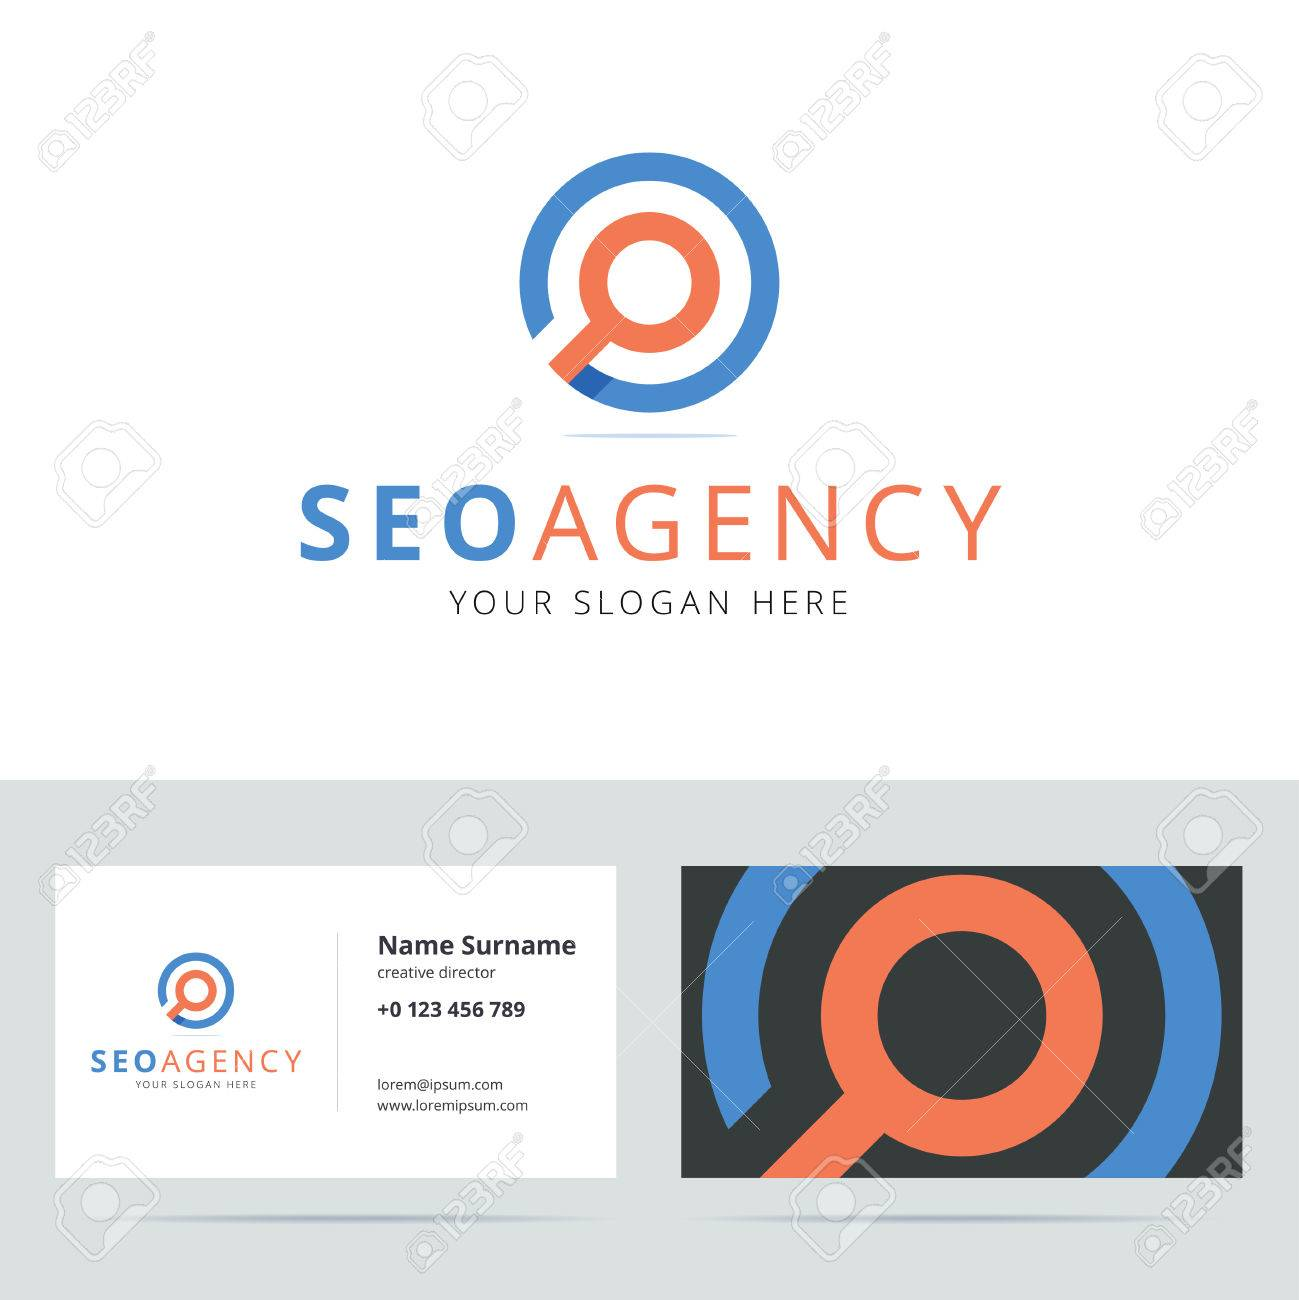 SEO Agency And Business Card Template. Search Engine Optimization ...